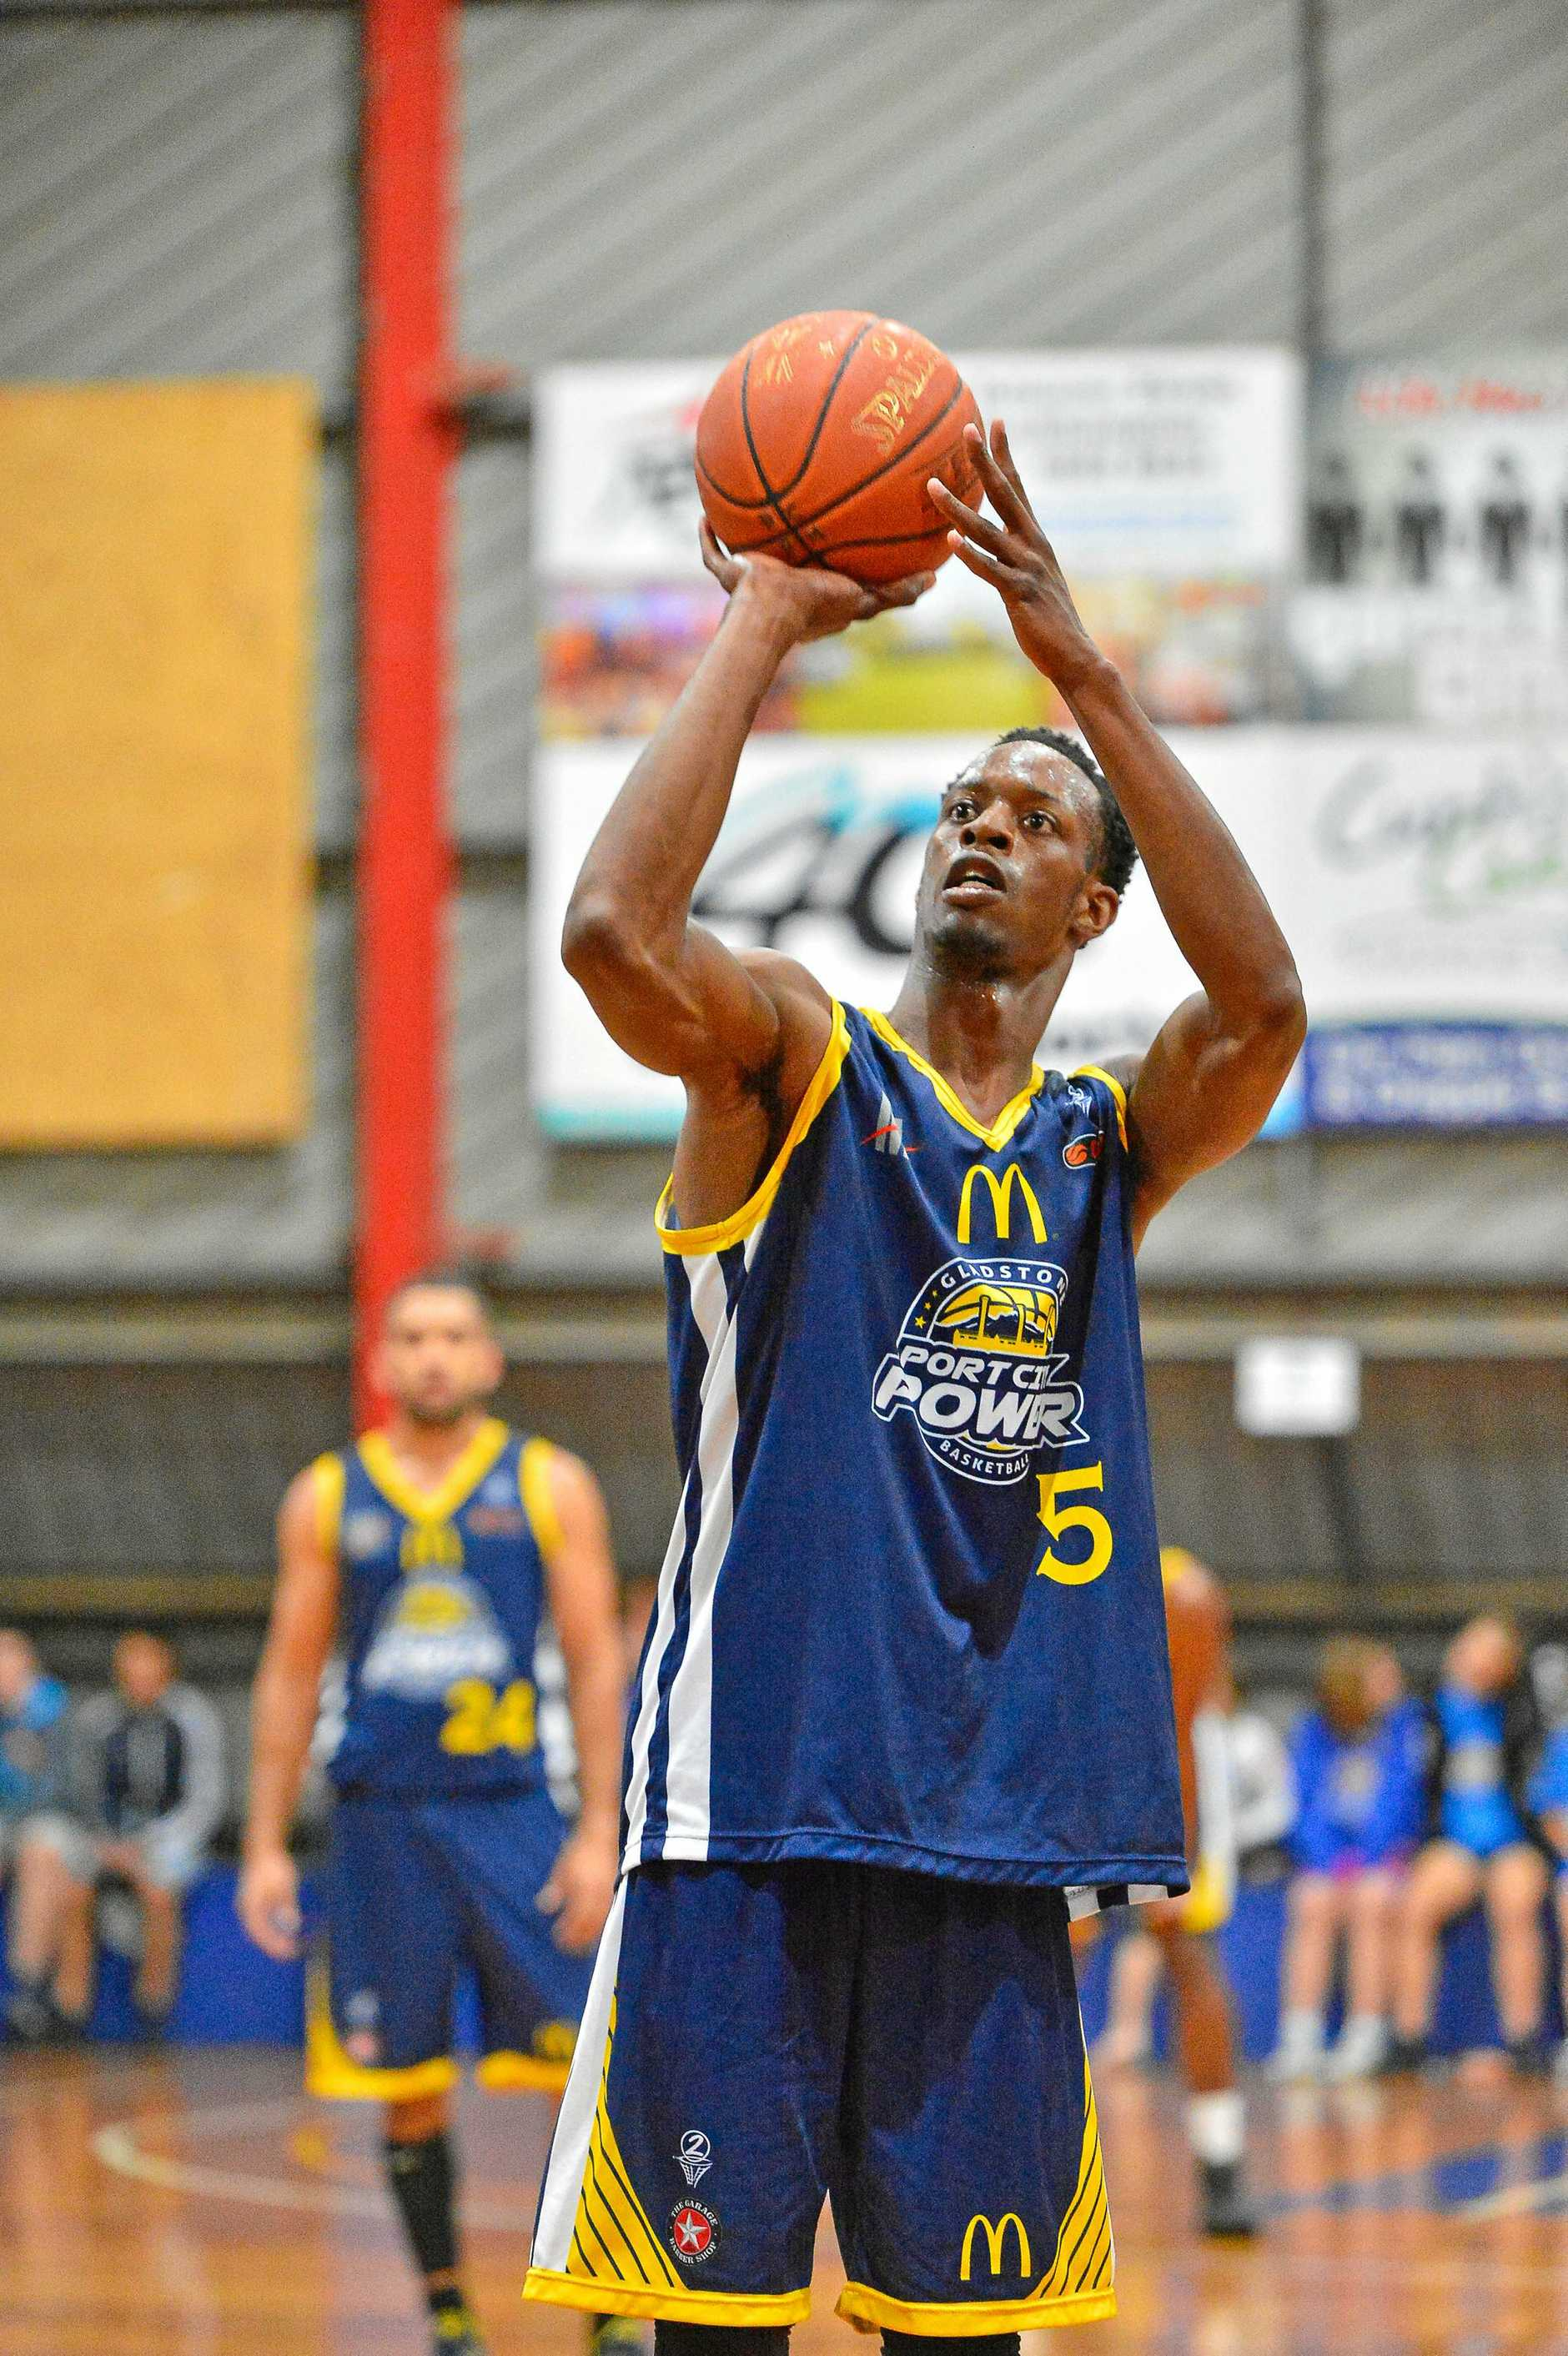 Men's Basketball May 16, 2015. Glasstone Port City Power vs Gold Coast.  Power's #5 Ray Willis was man of the game.  Photo Mike Richards / The Observer